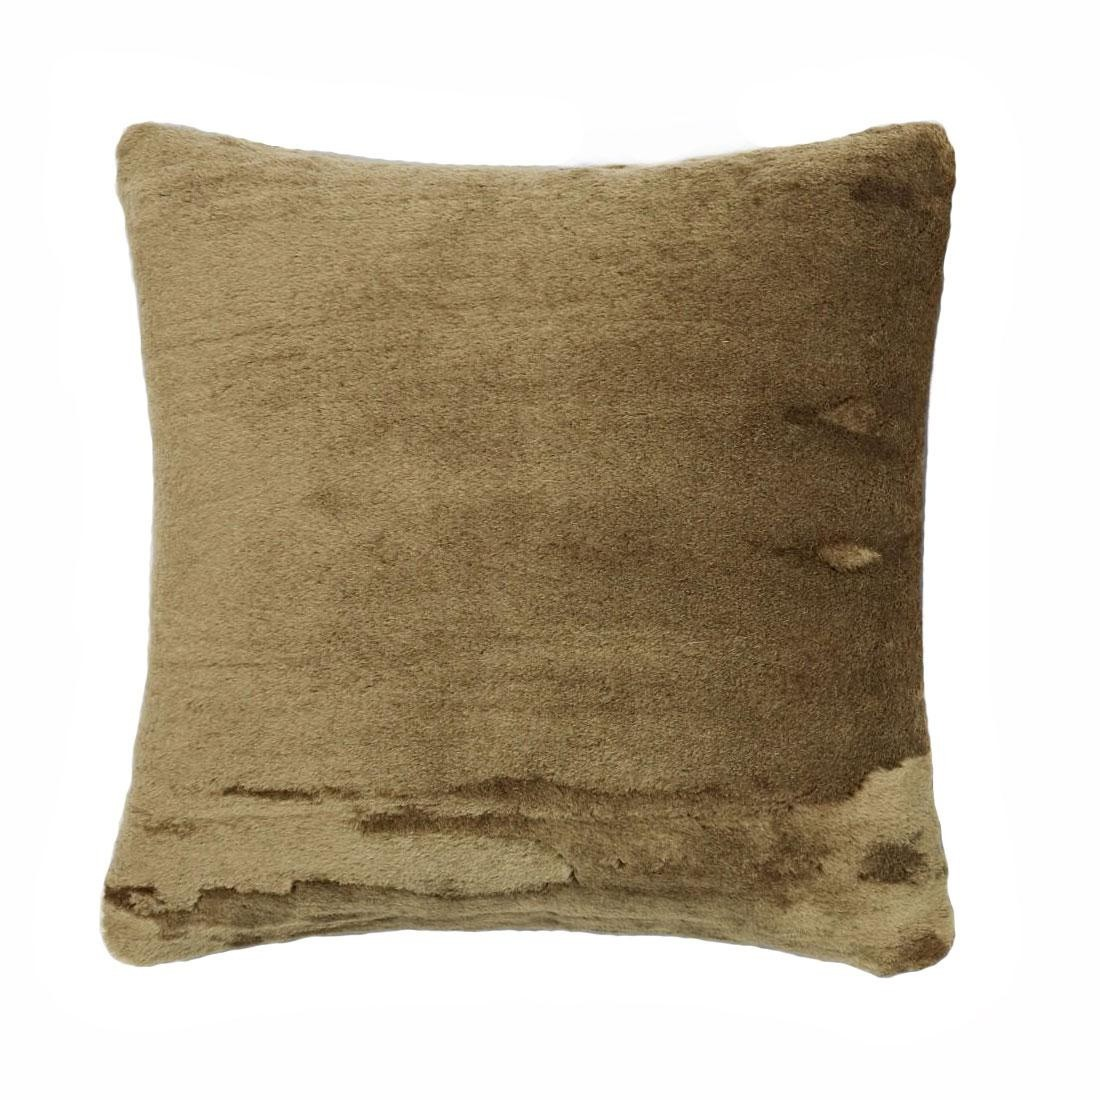 Tom Dixon Couchtisch Soft Cushion 45x45cm